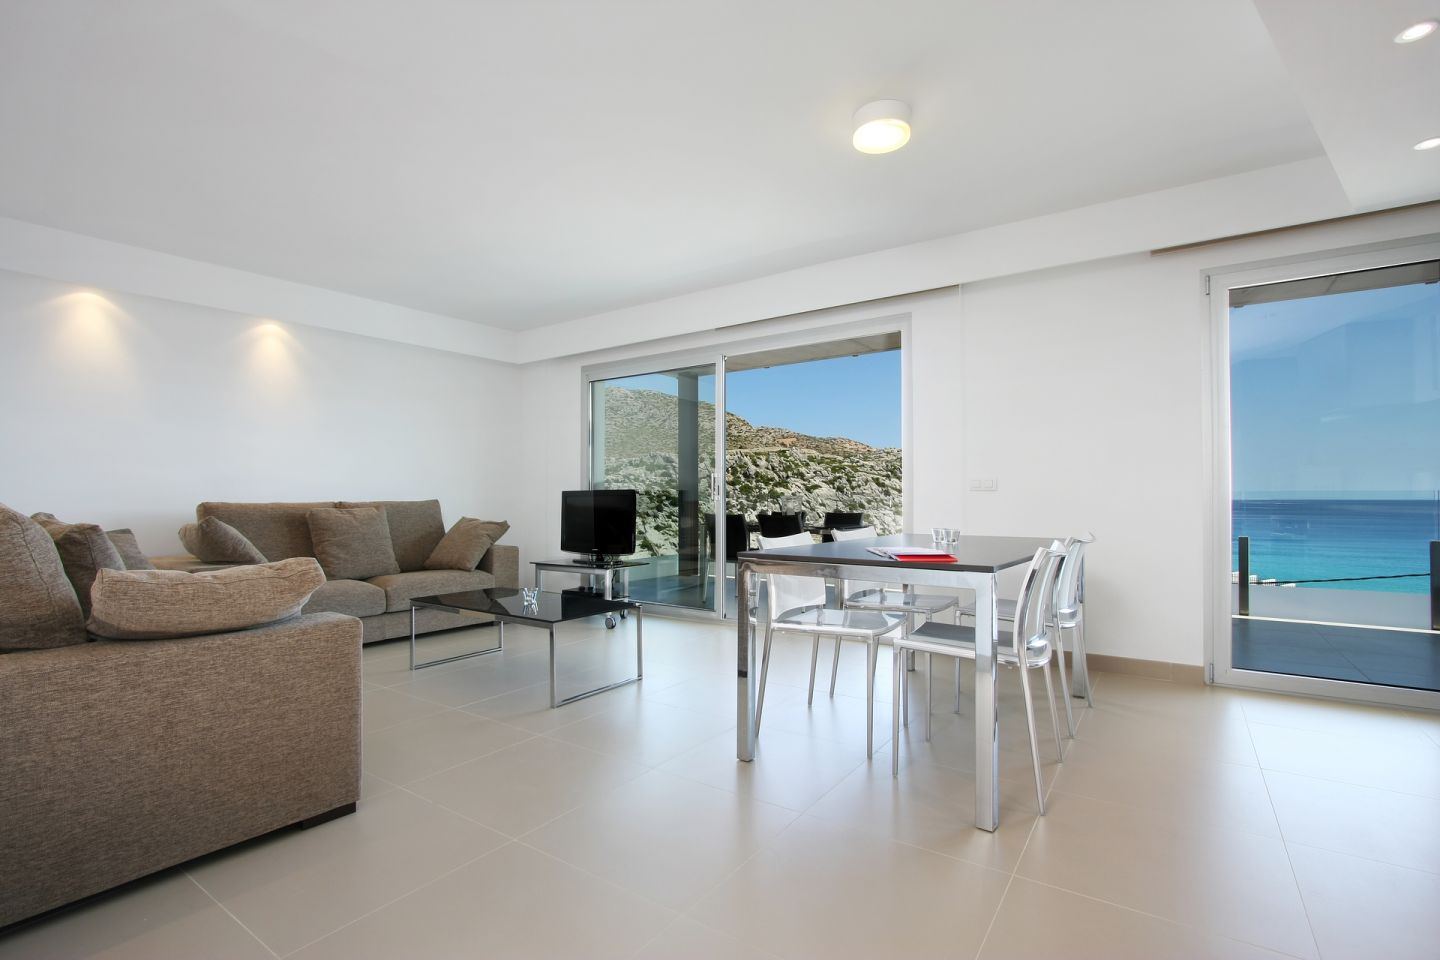 2 Bed Penthouse for sale in Cala San Vicente 5